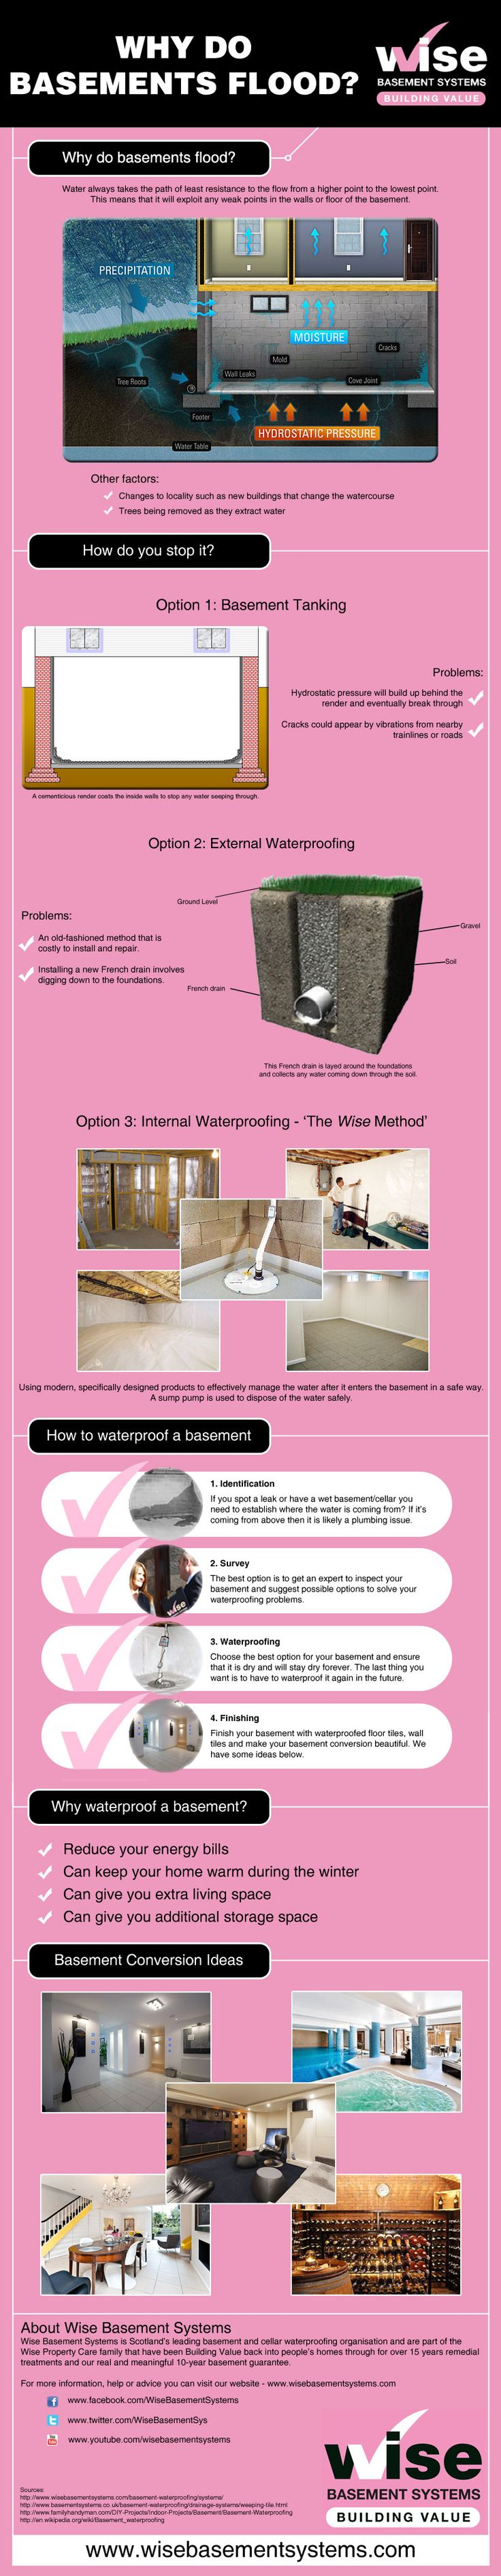 Why Do Basements Flood? [infographic]